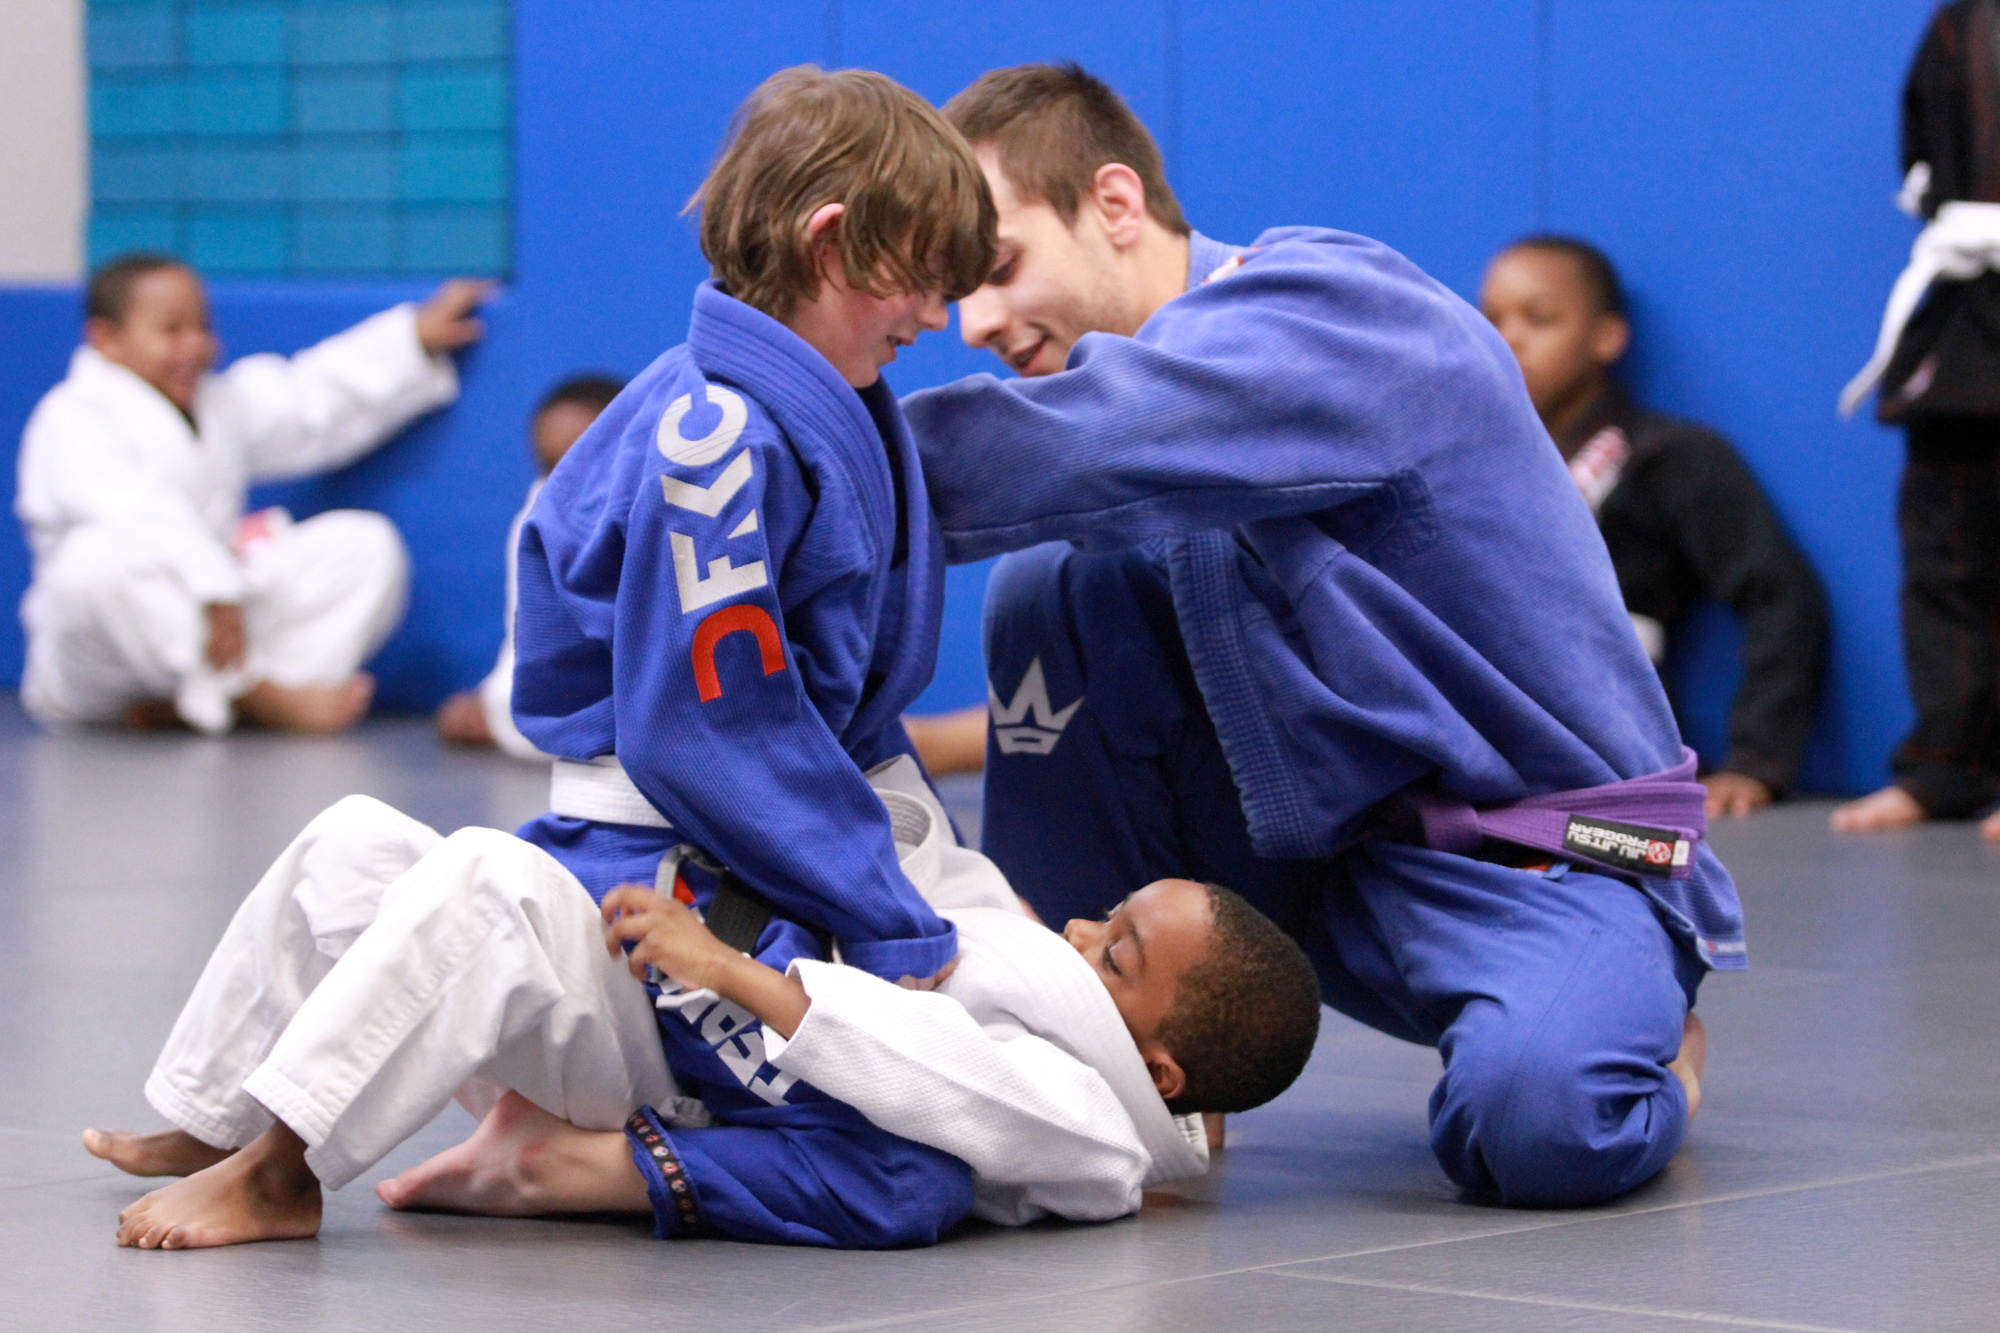 Here Are The Pros & Cons Of Children Training In Martial Arts